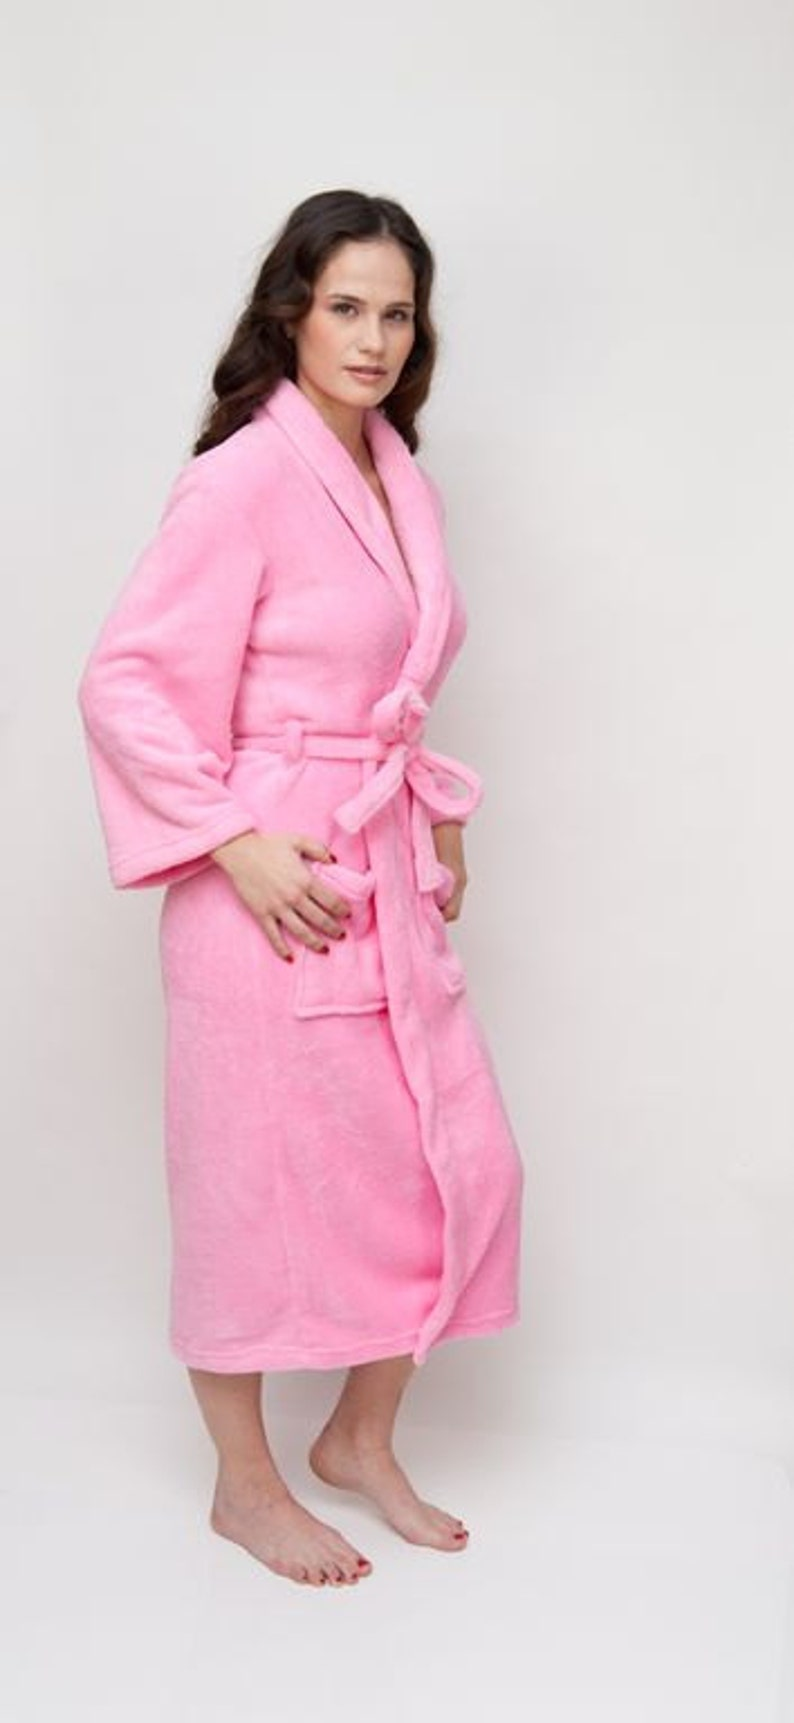 His and Hers Bathrobe Monogram Bathrobes Bridal Robes Pink Bathrobe Plush Robe by Wrapped in a Cloud Bride and Bridemaid Robes